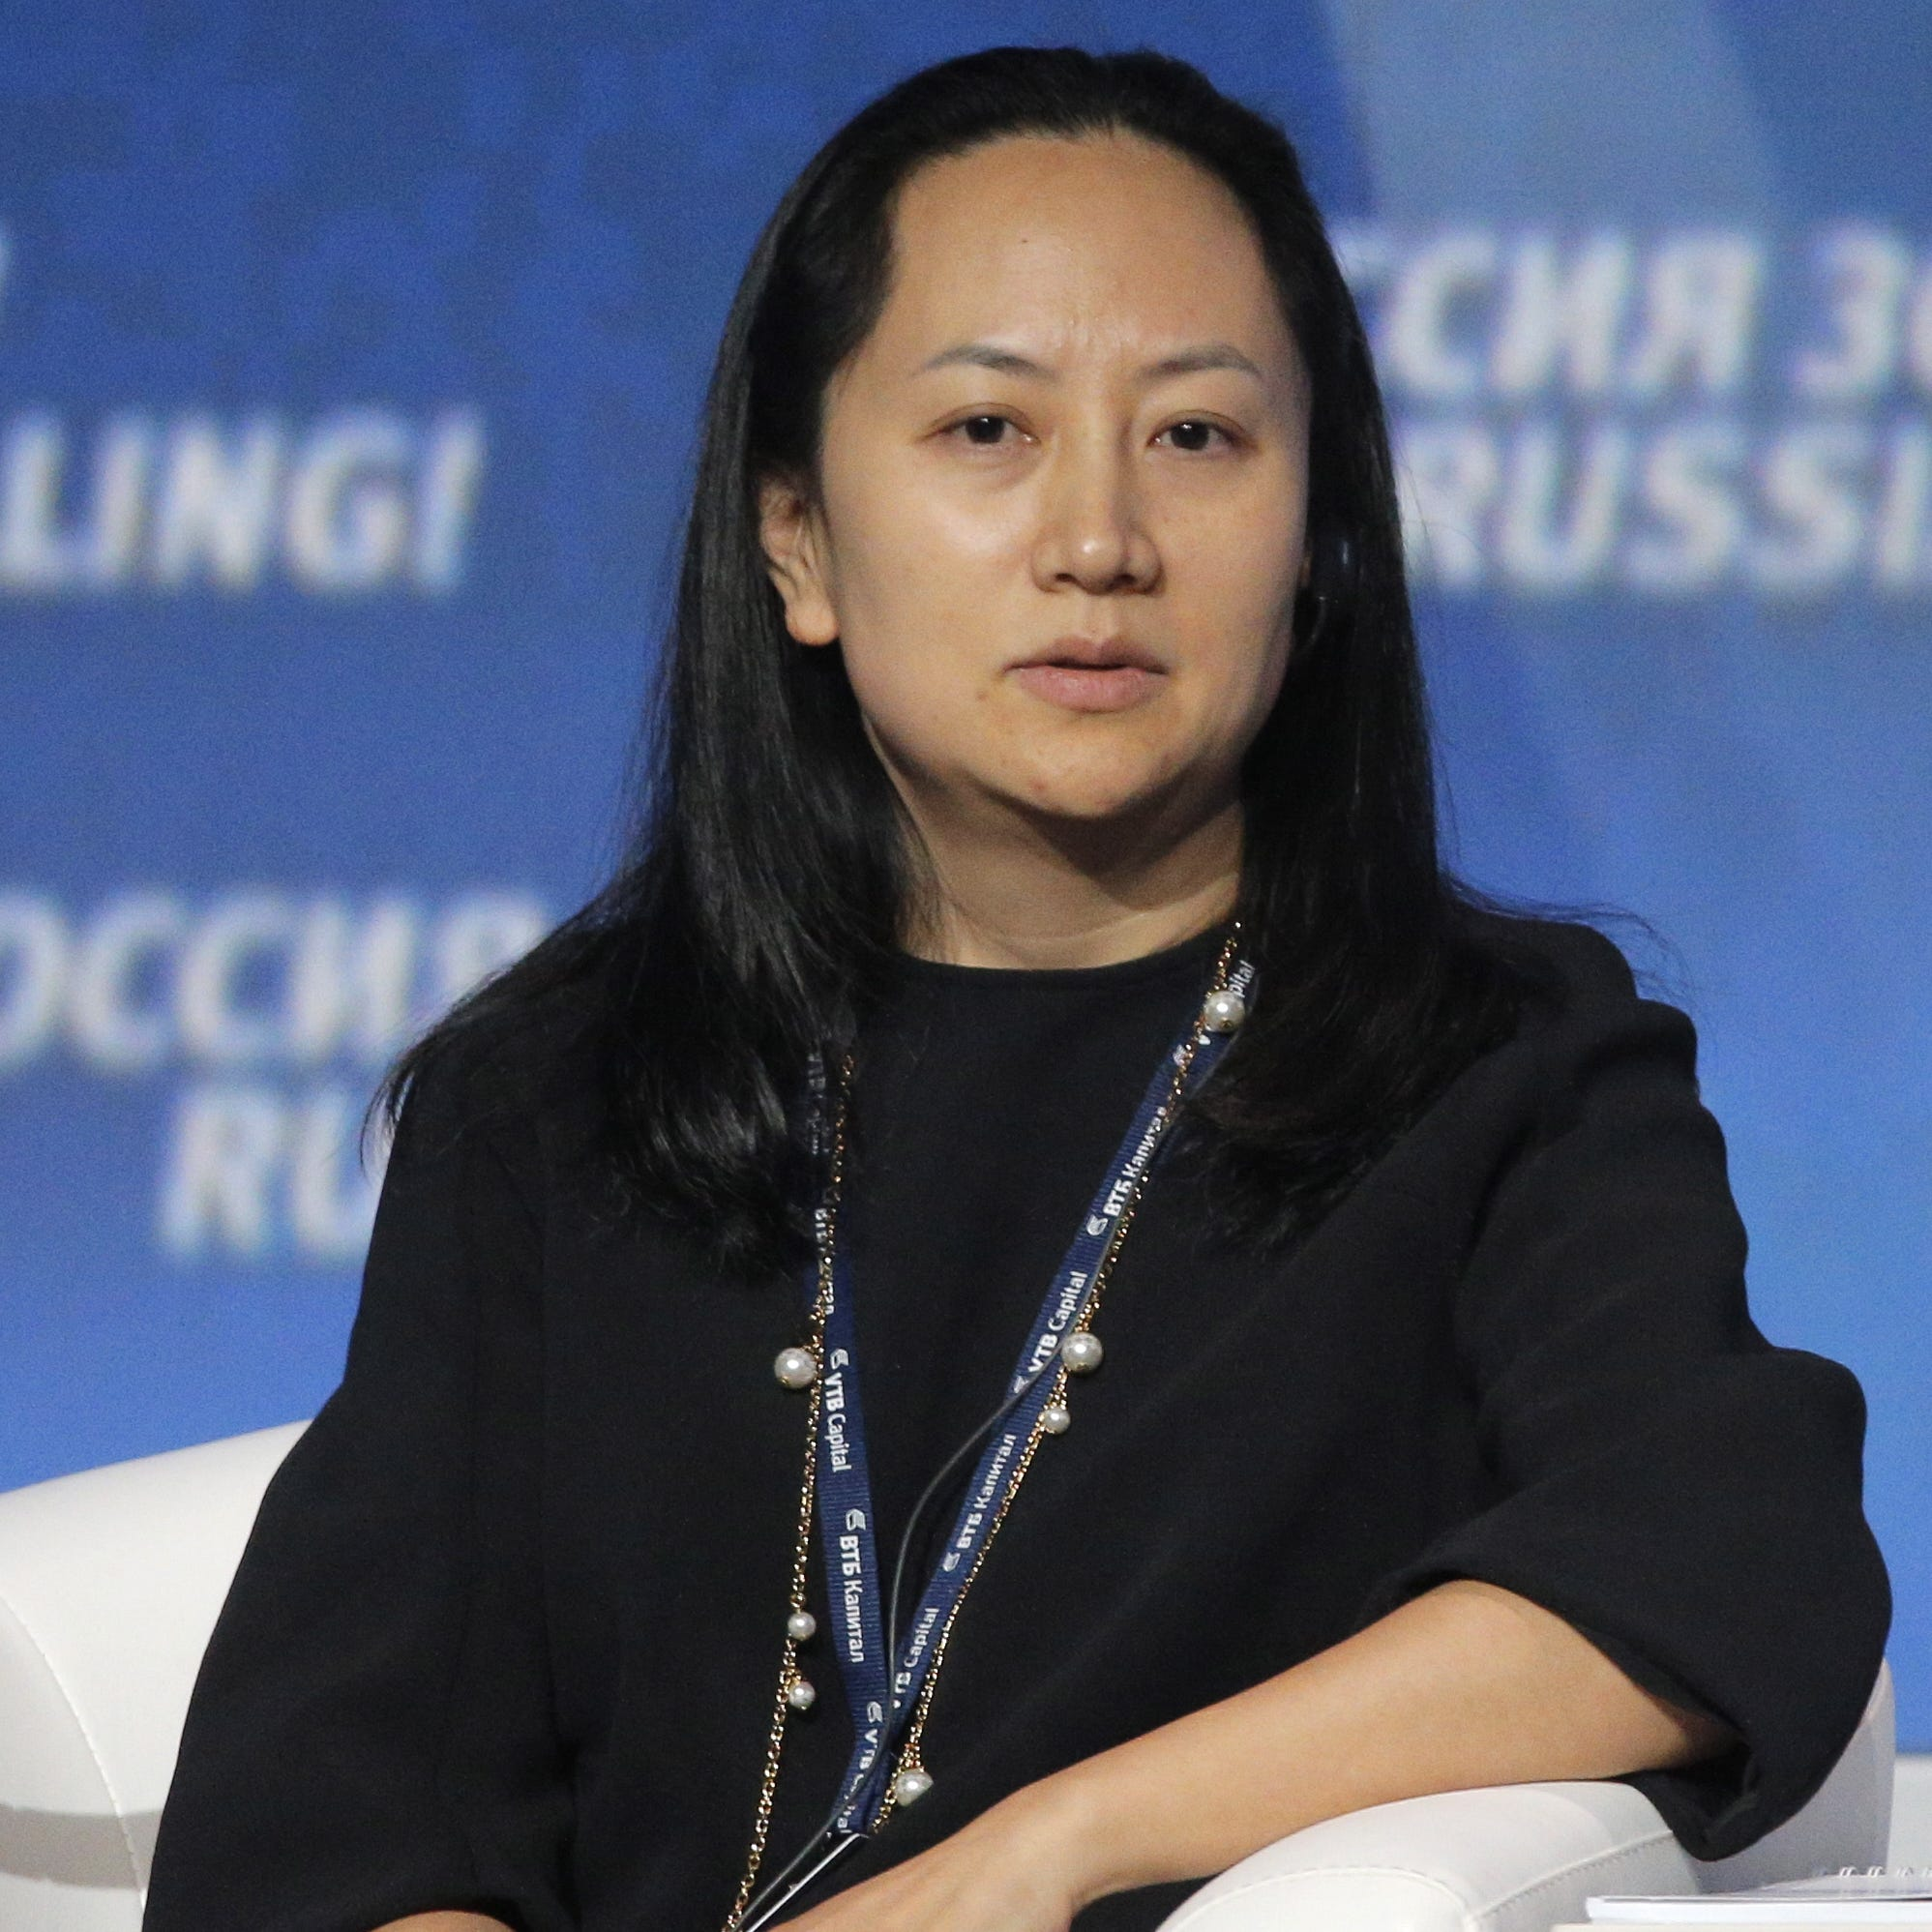 Meng Wanzhou, Chief Financial Officer of Huawei, is pictured attending the VTB Capital's 'RUSSIA CALLING' investment forum in Moscow.